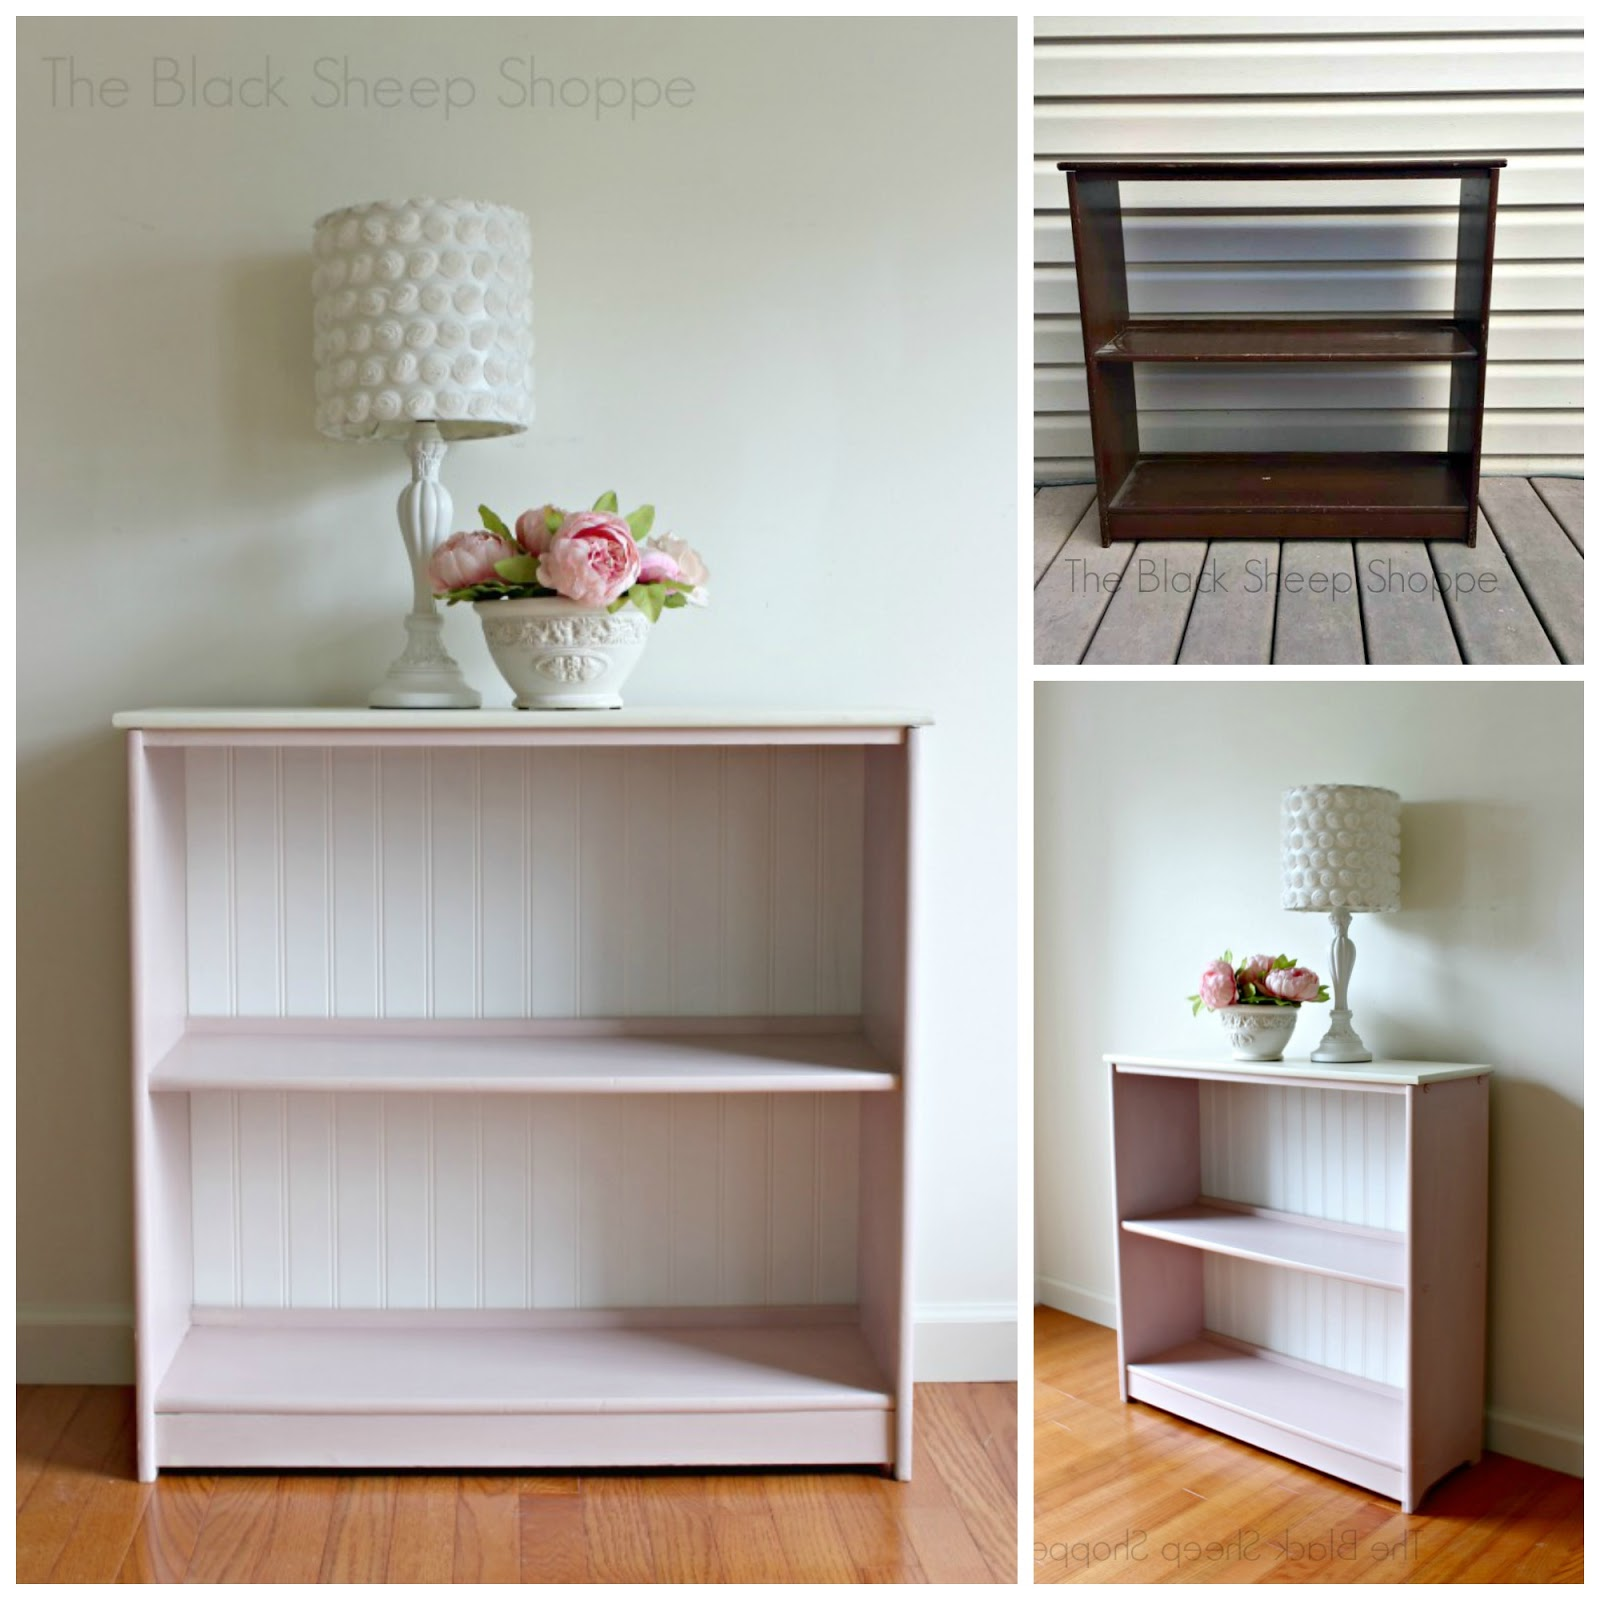 Furniture transformation with paint.